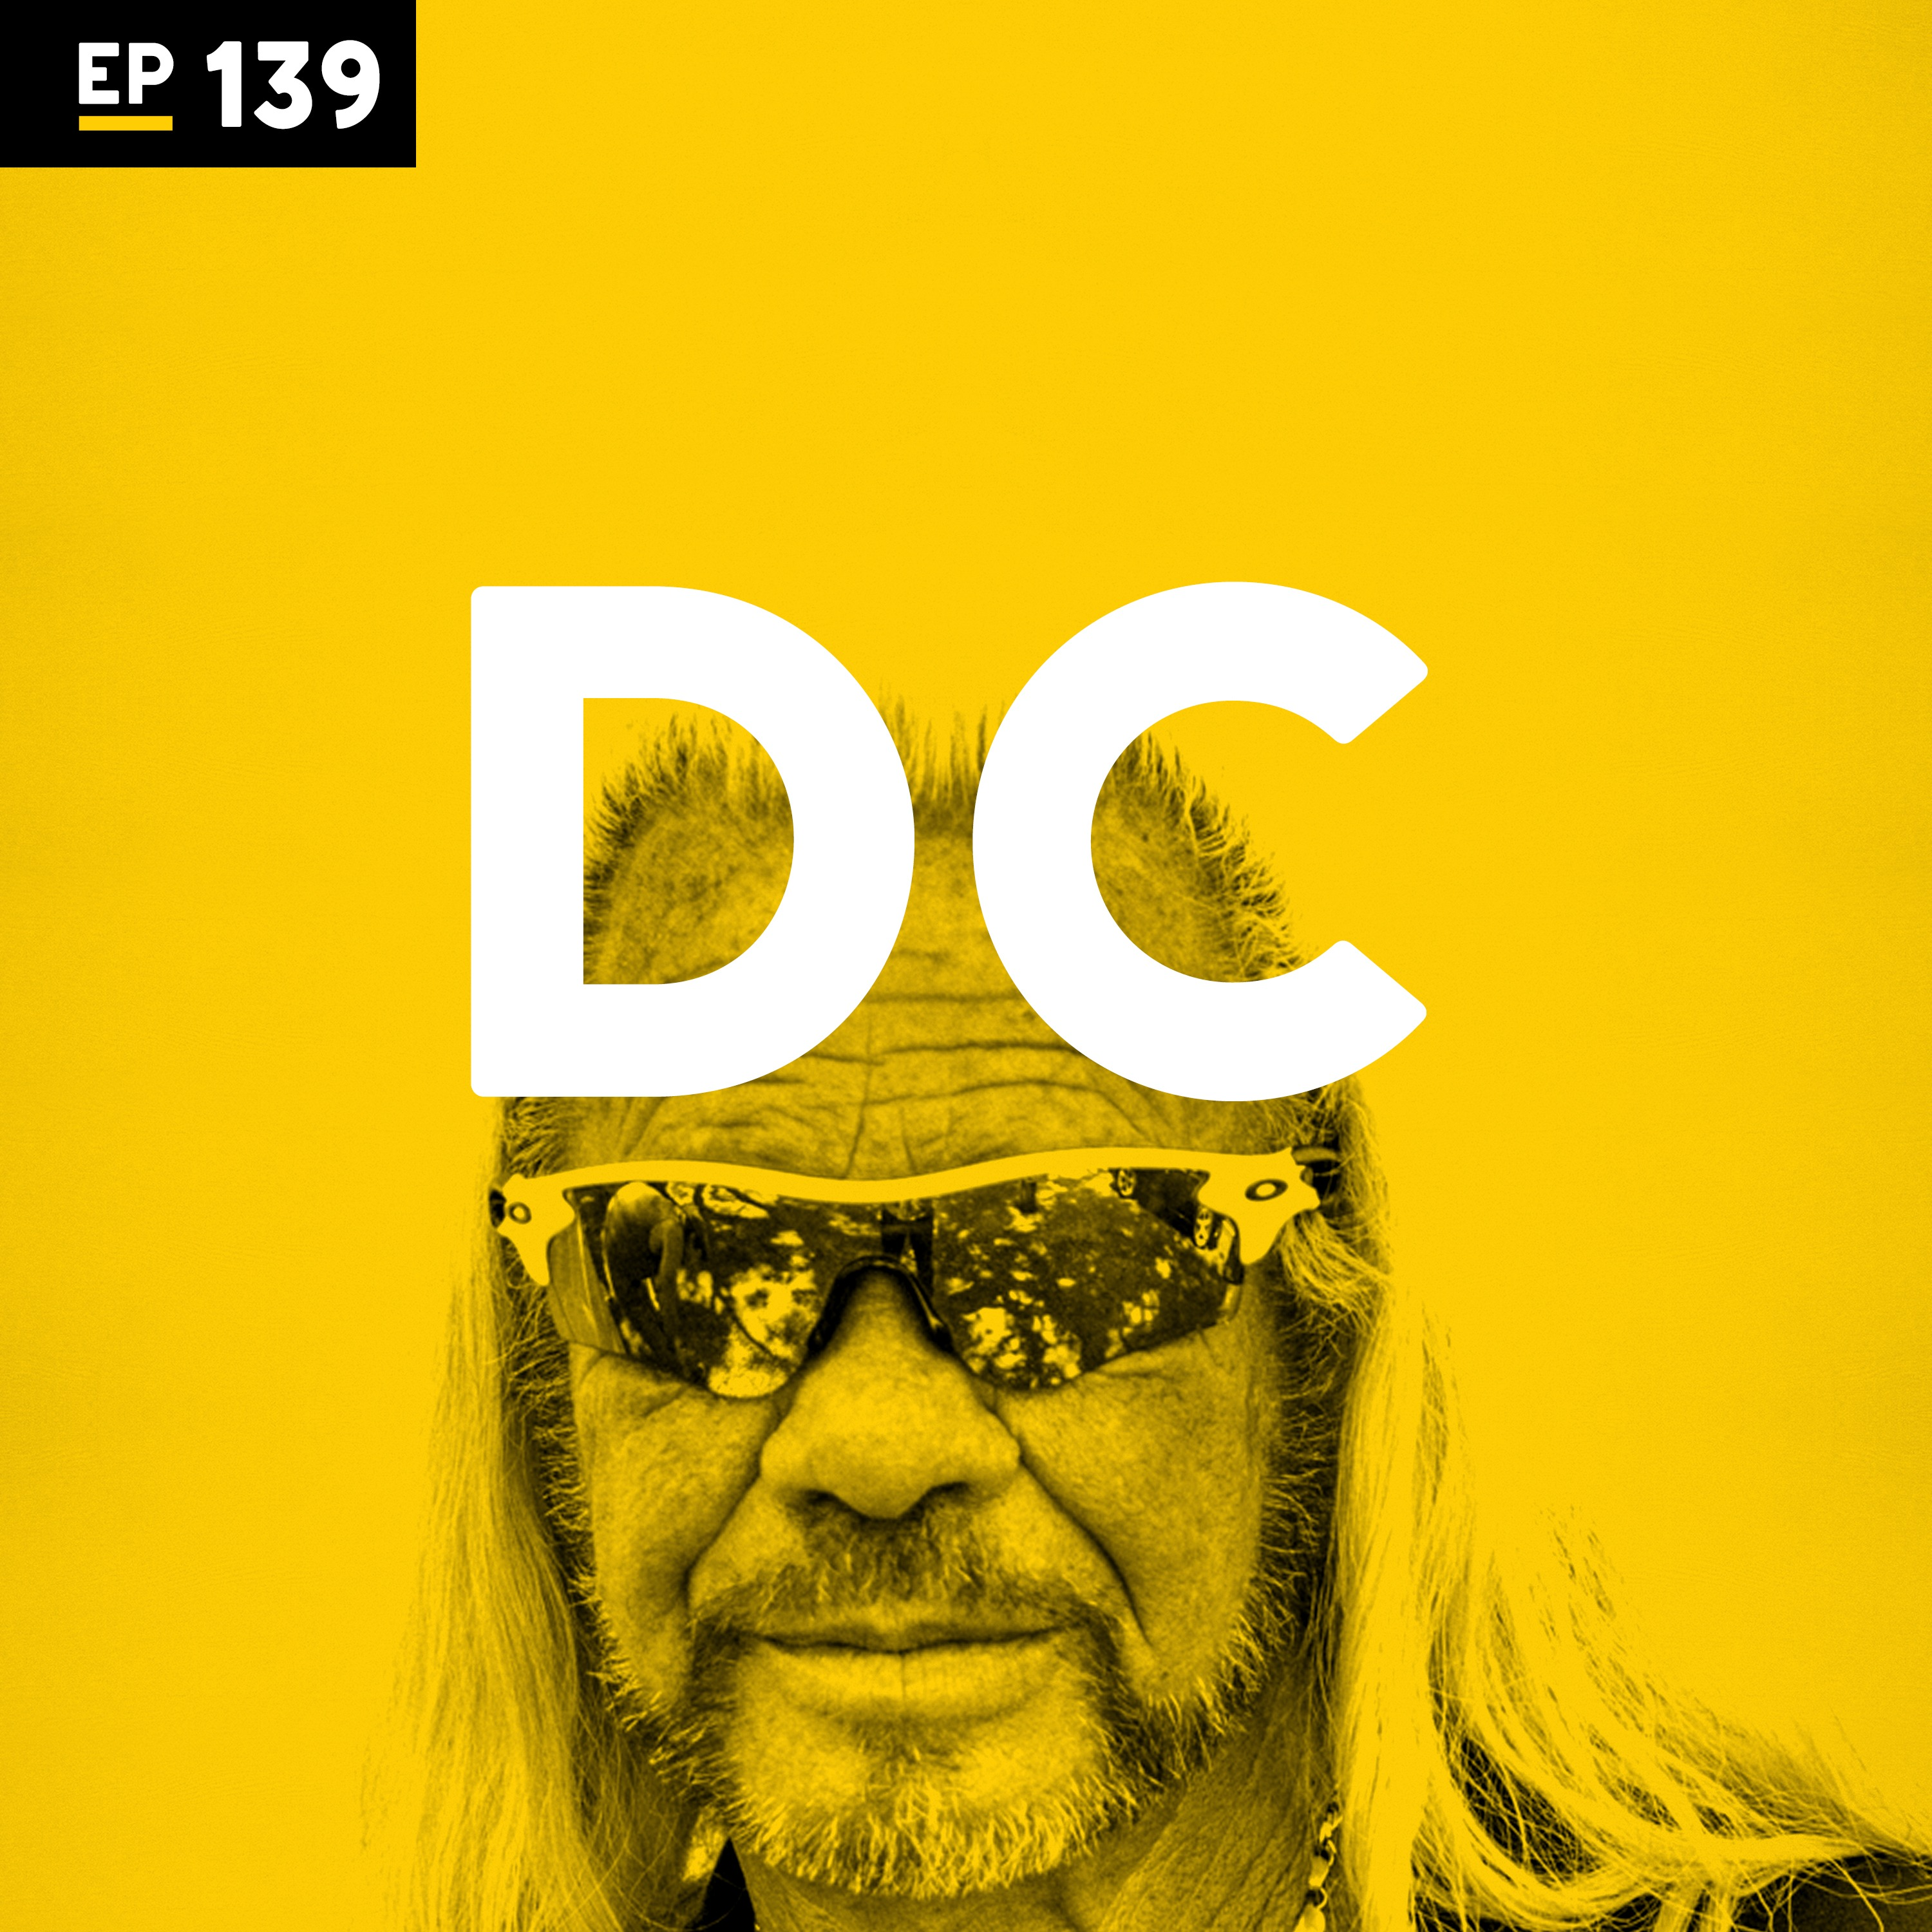 EXPERTS ON EXPERT: Dog the Bounty Hunter